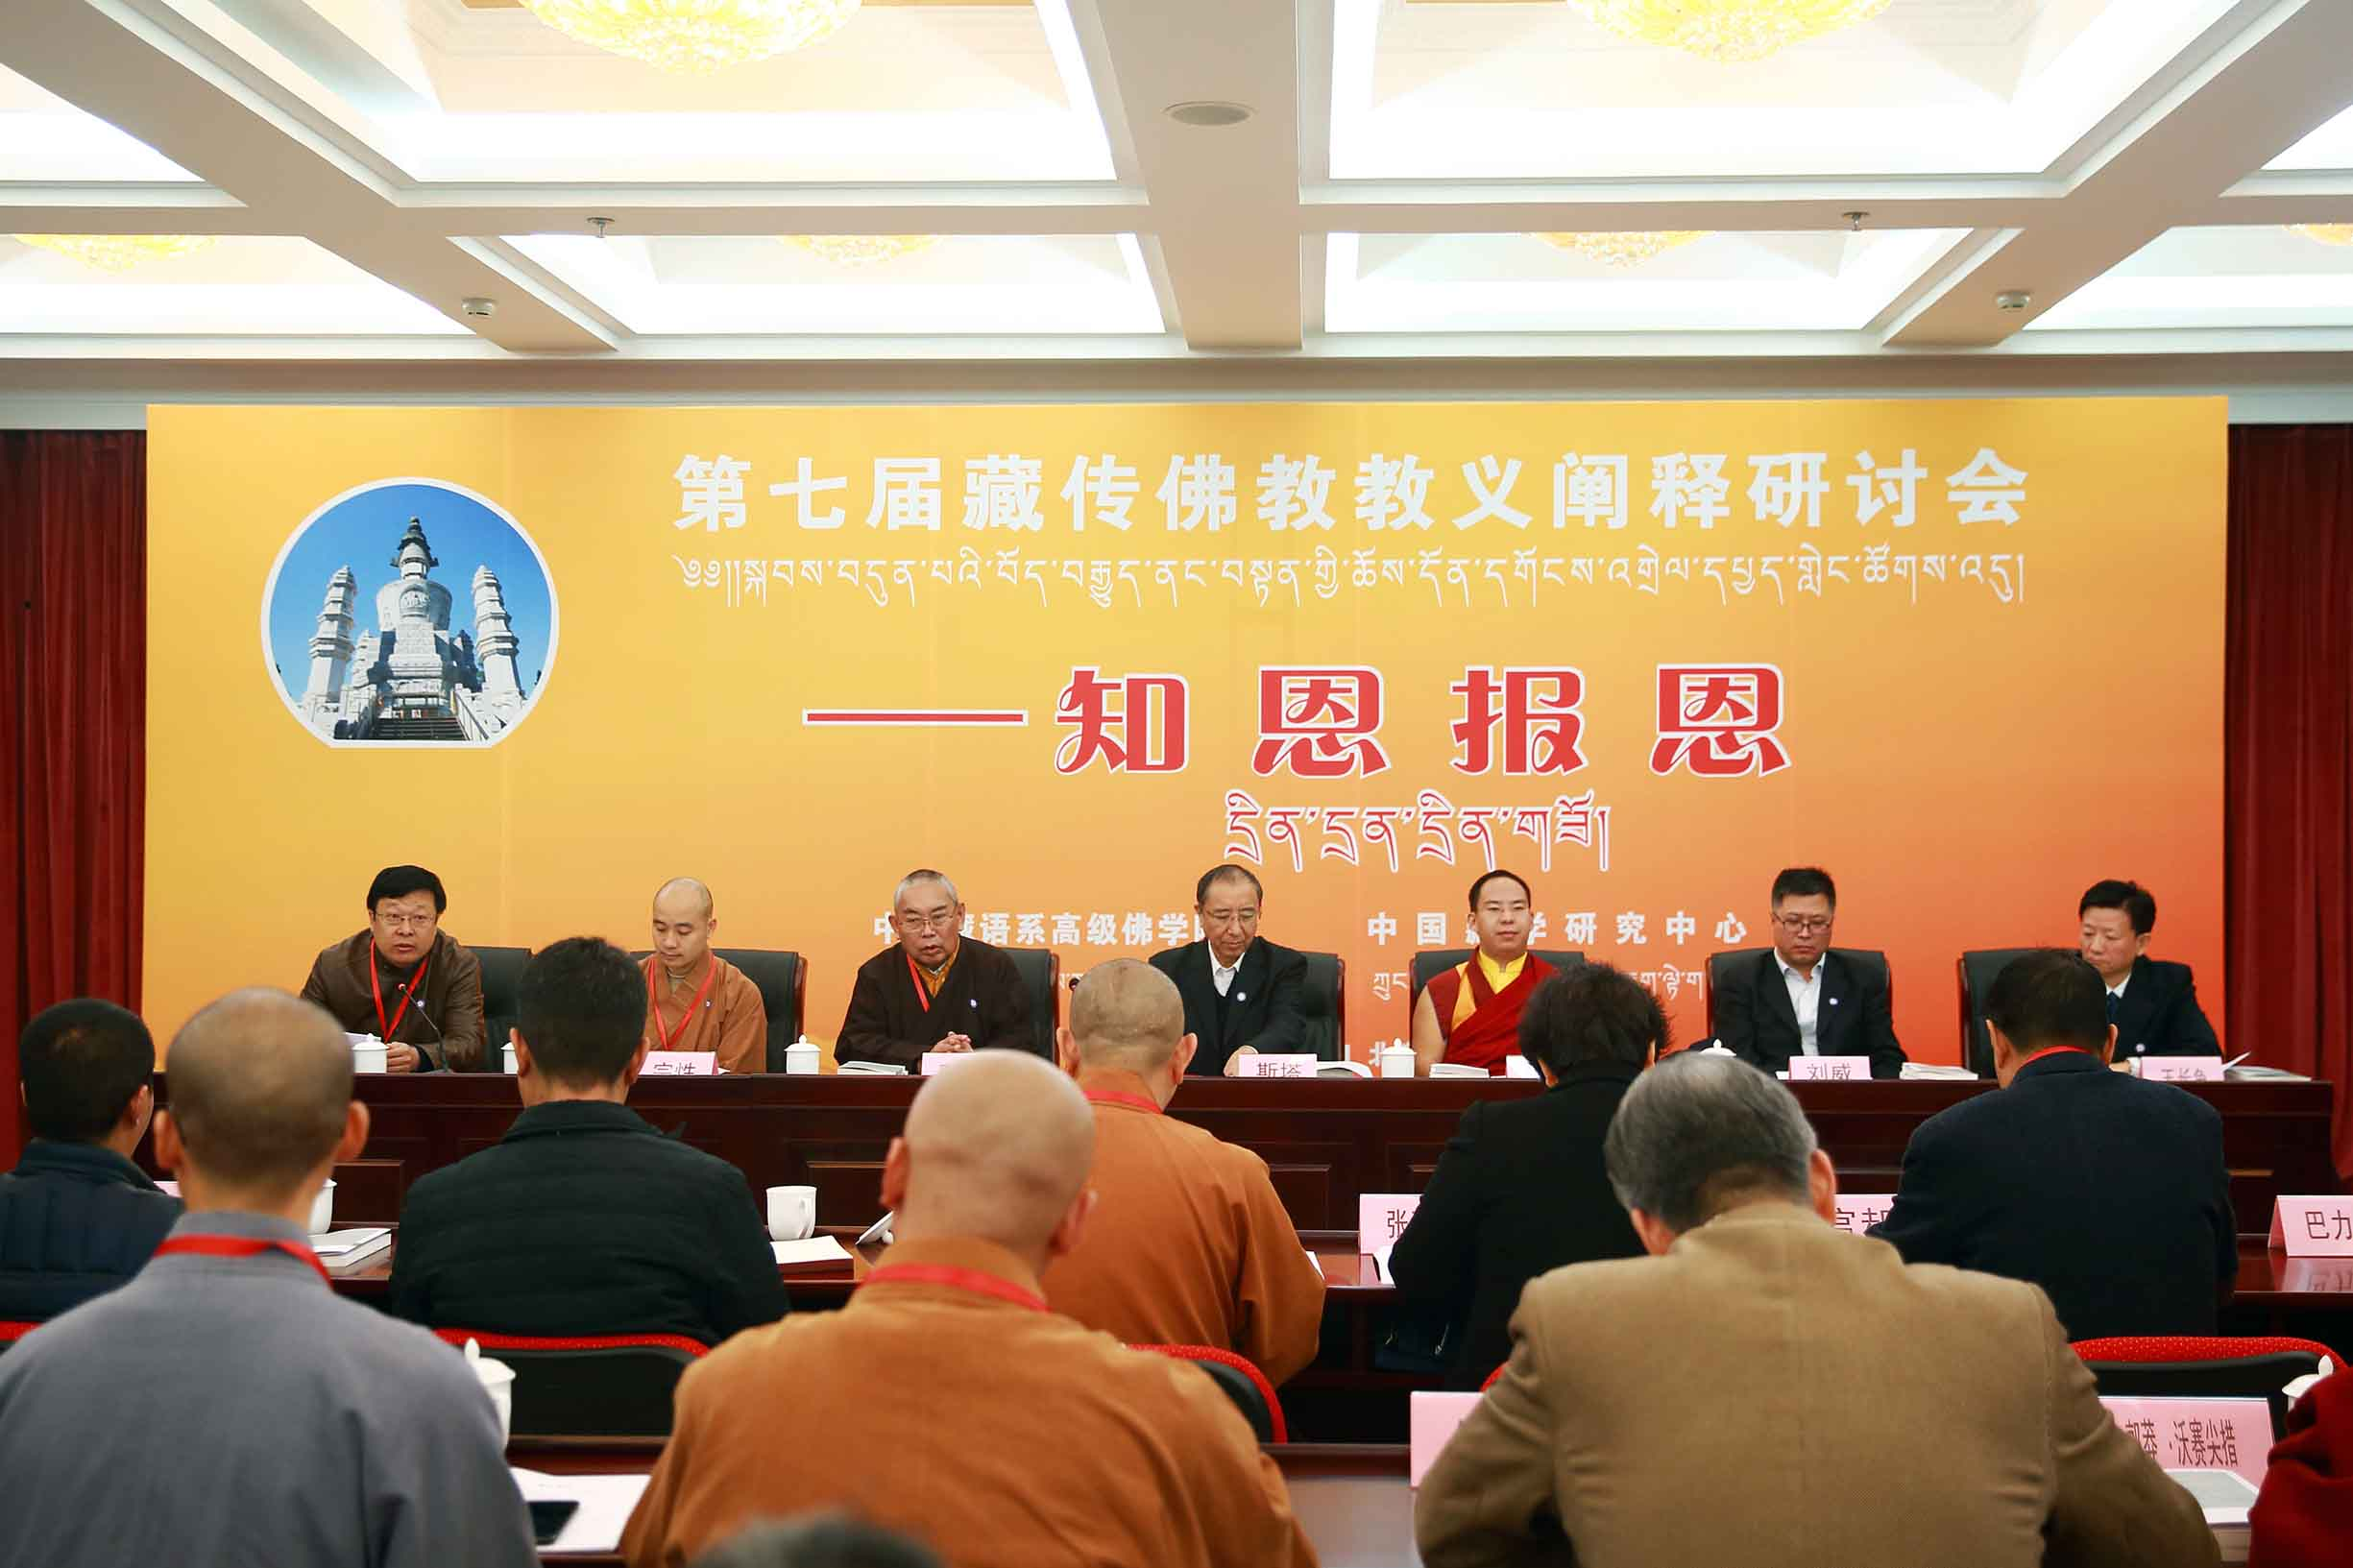 Seventh Tibetan Buddhist Doctrine Interpretation Seminar is opened at the High-level Tibetan Buddhism College of China, on November 6, 2017. (Photo courtesy: eng.tibet.cn)